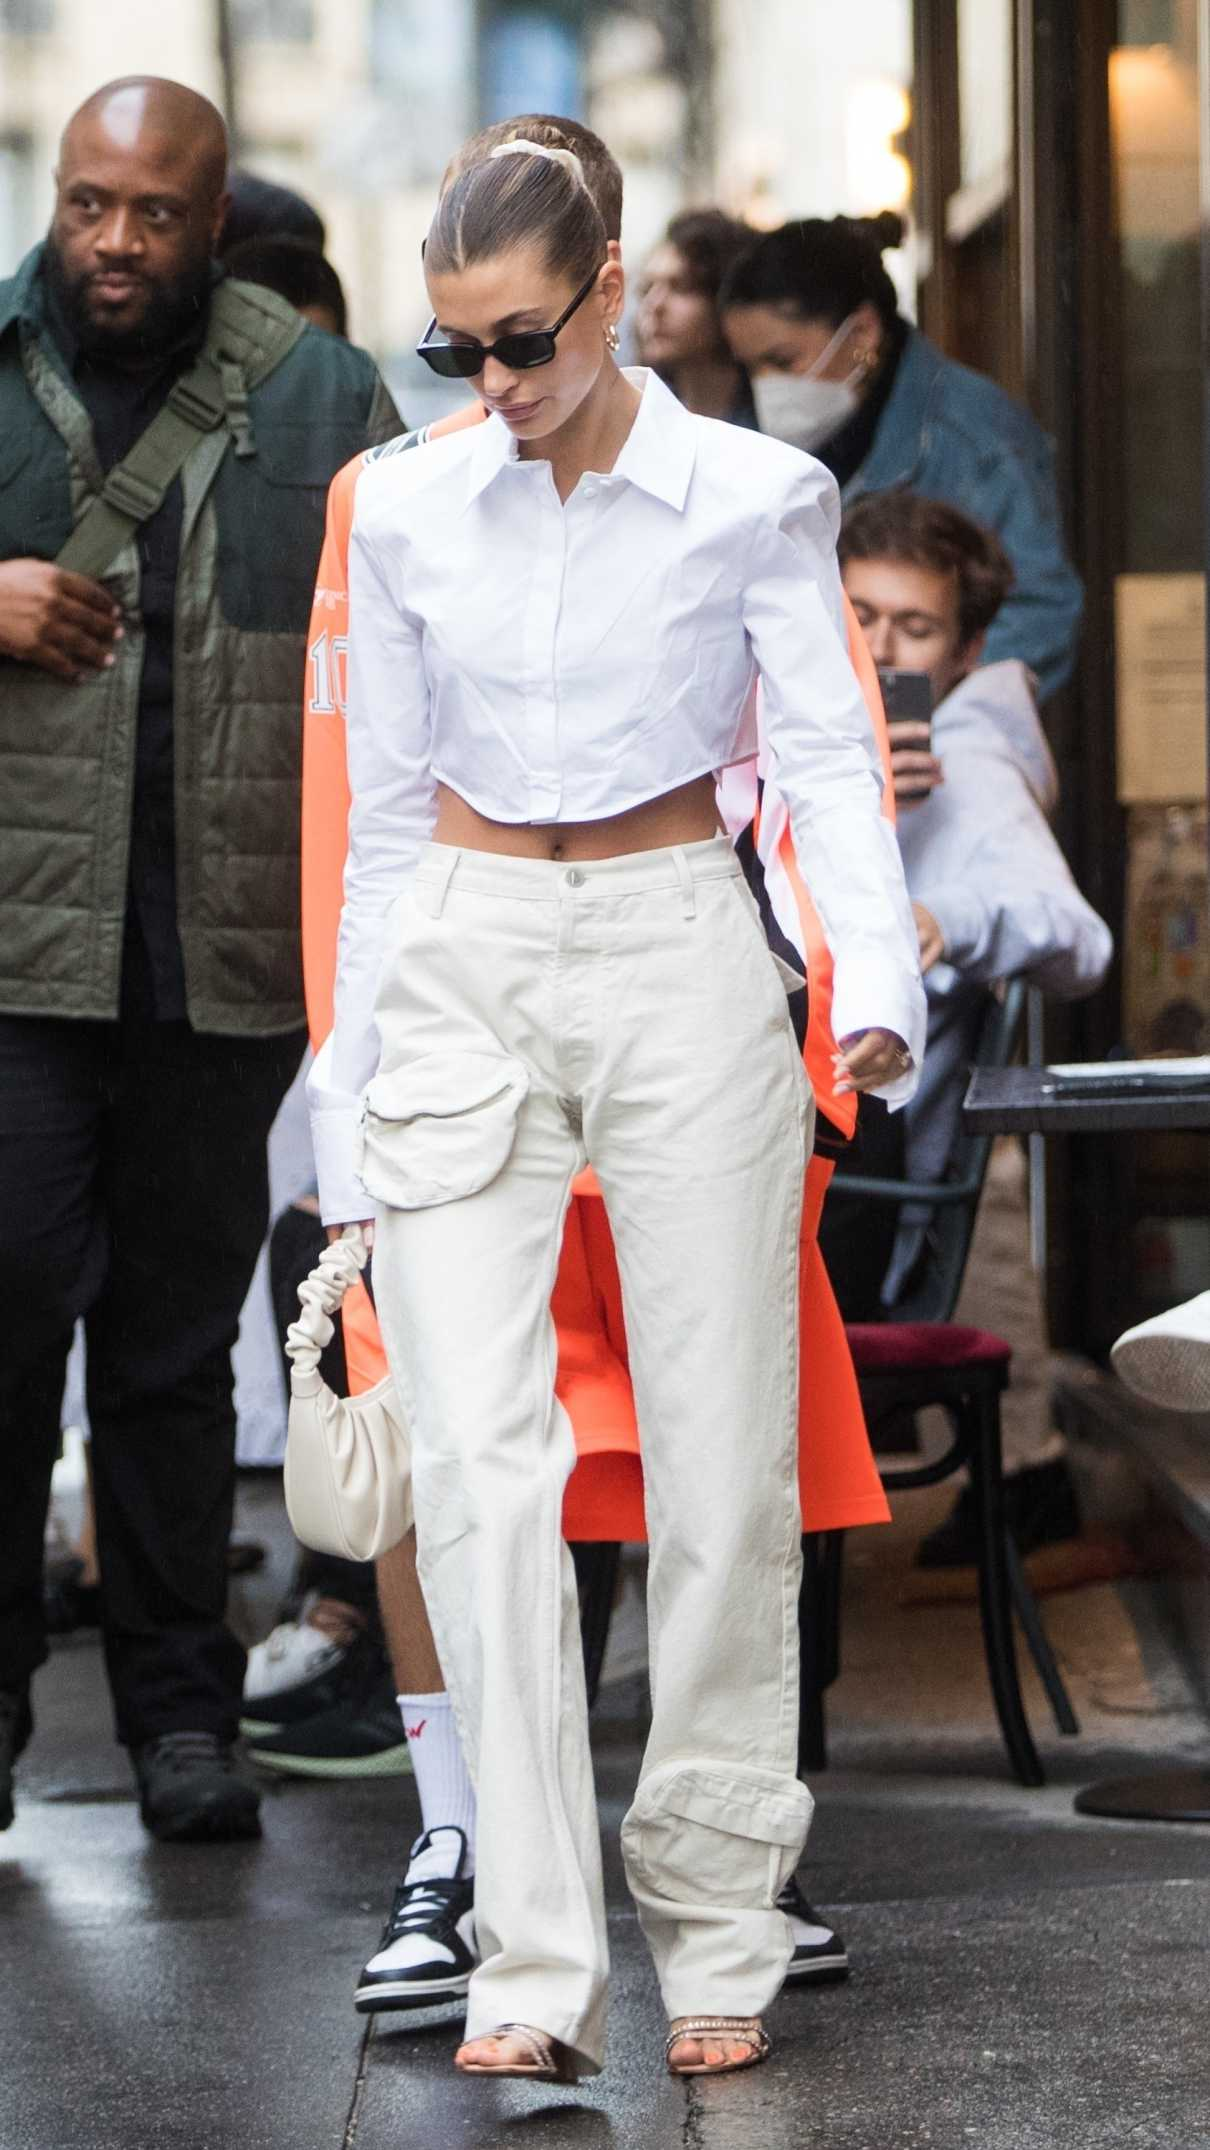 Hailey Bieber in a White Outfit